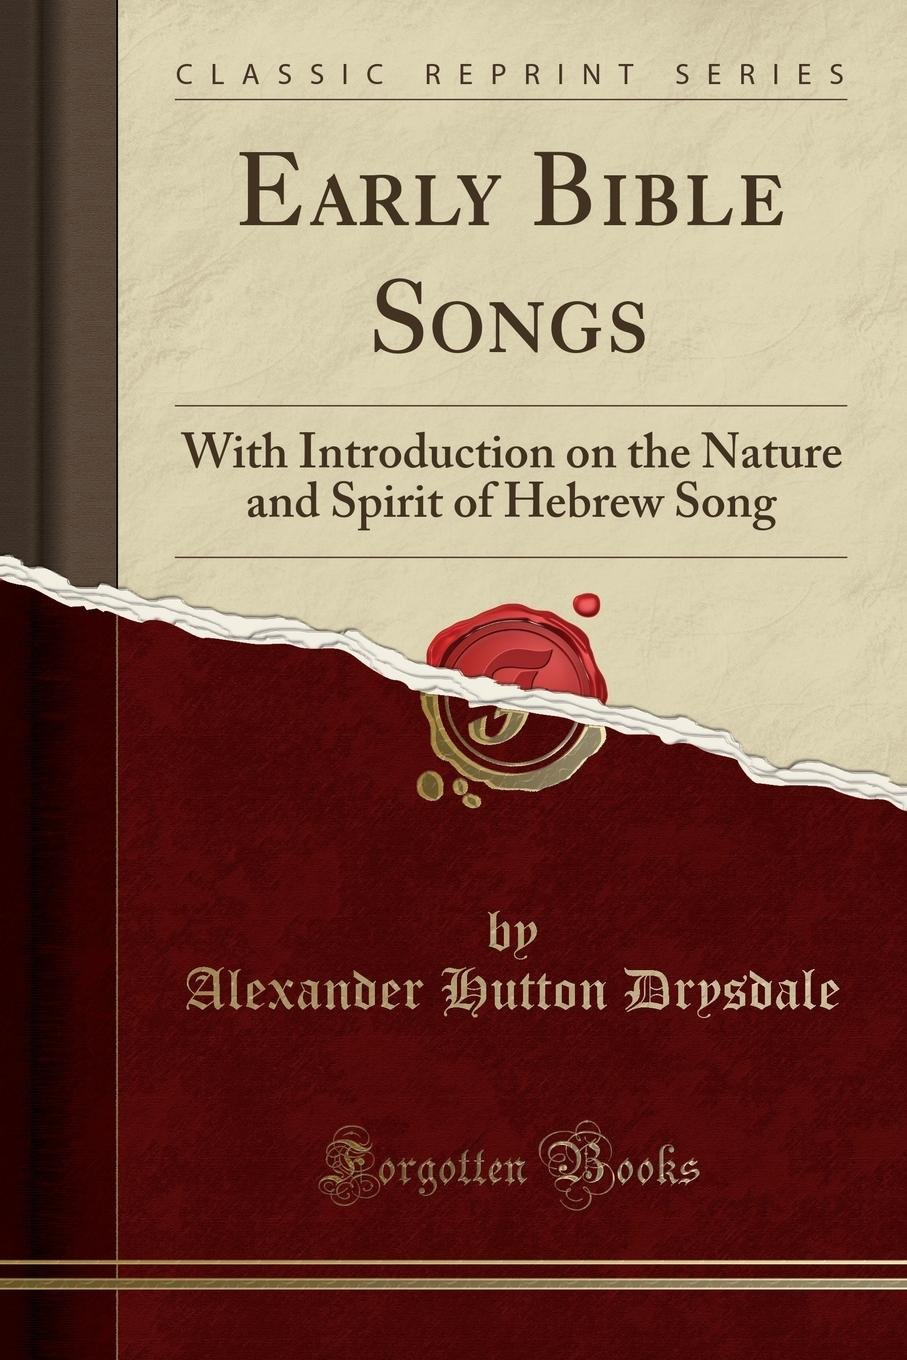 Early Bible Songs: With Introduction on the Nature and